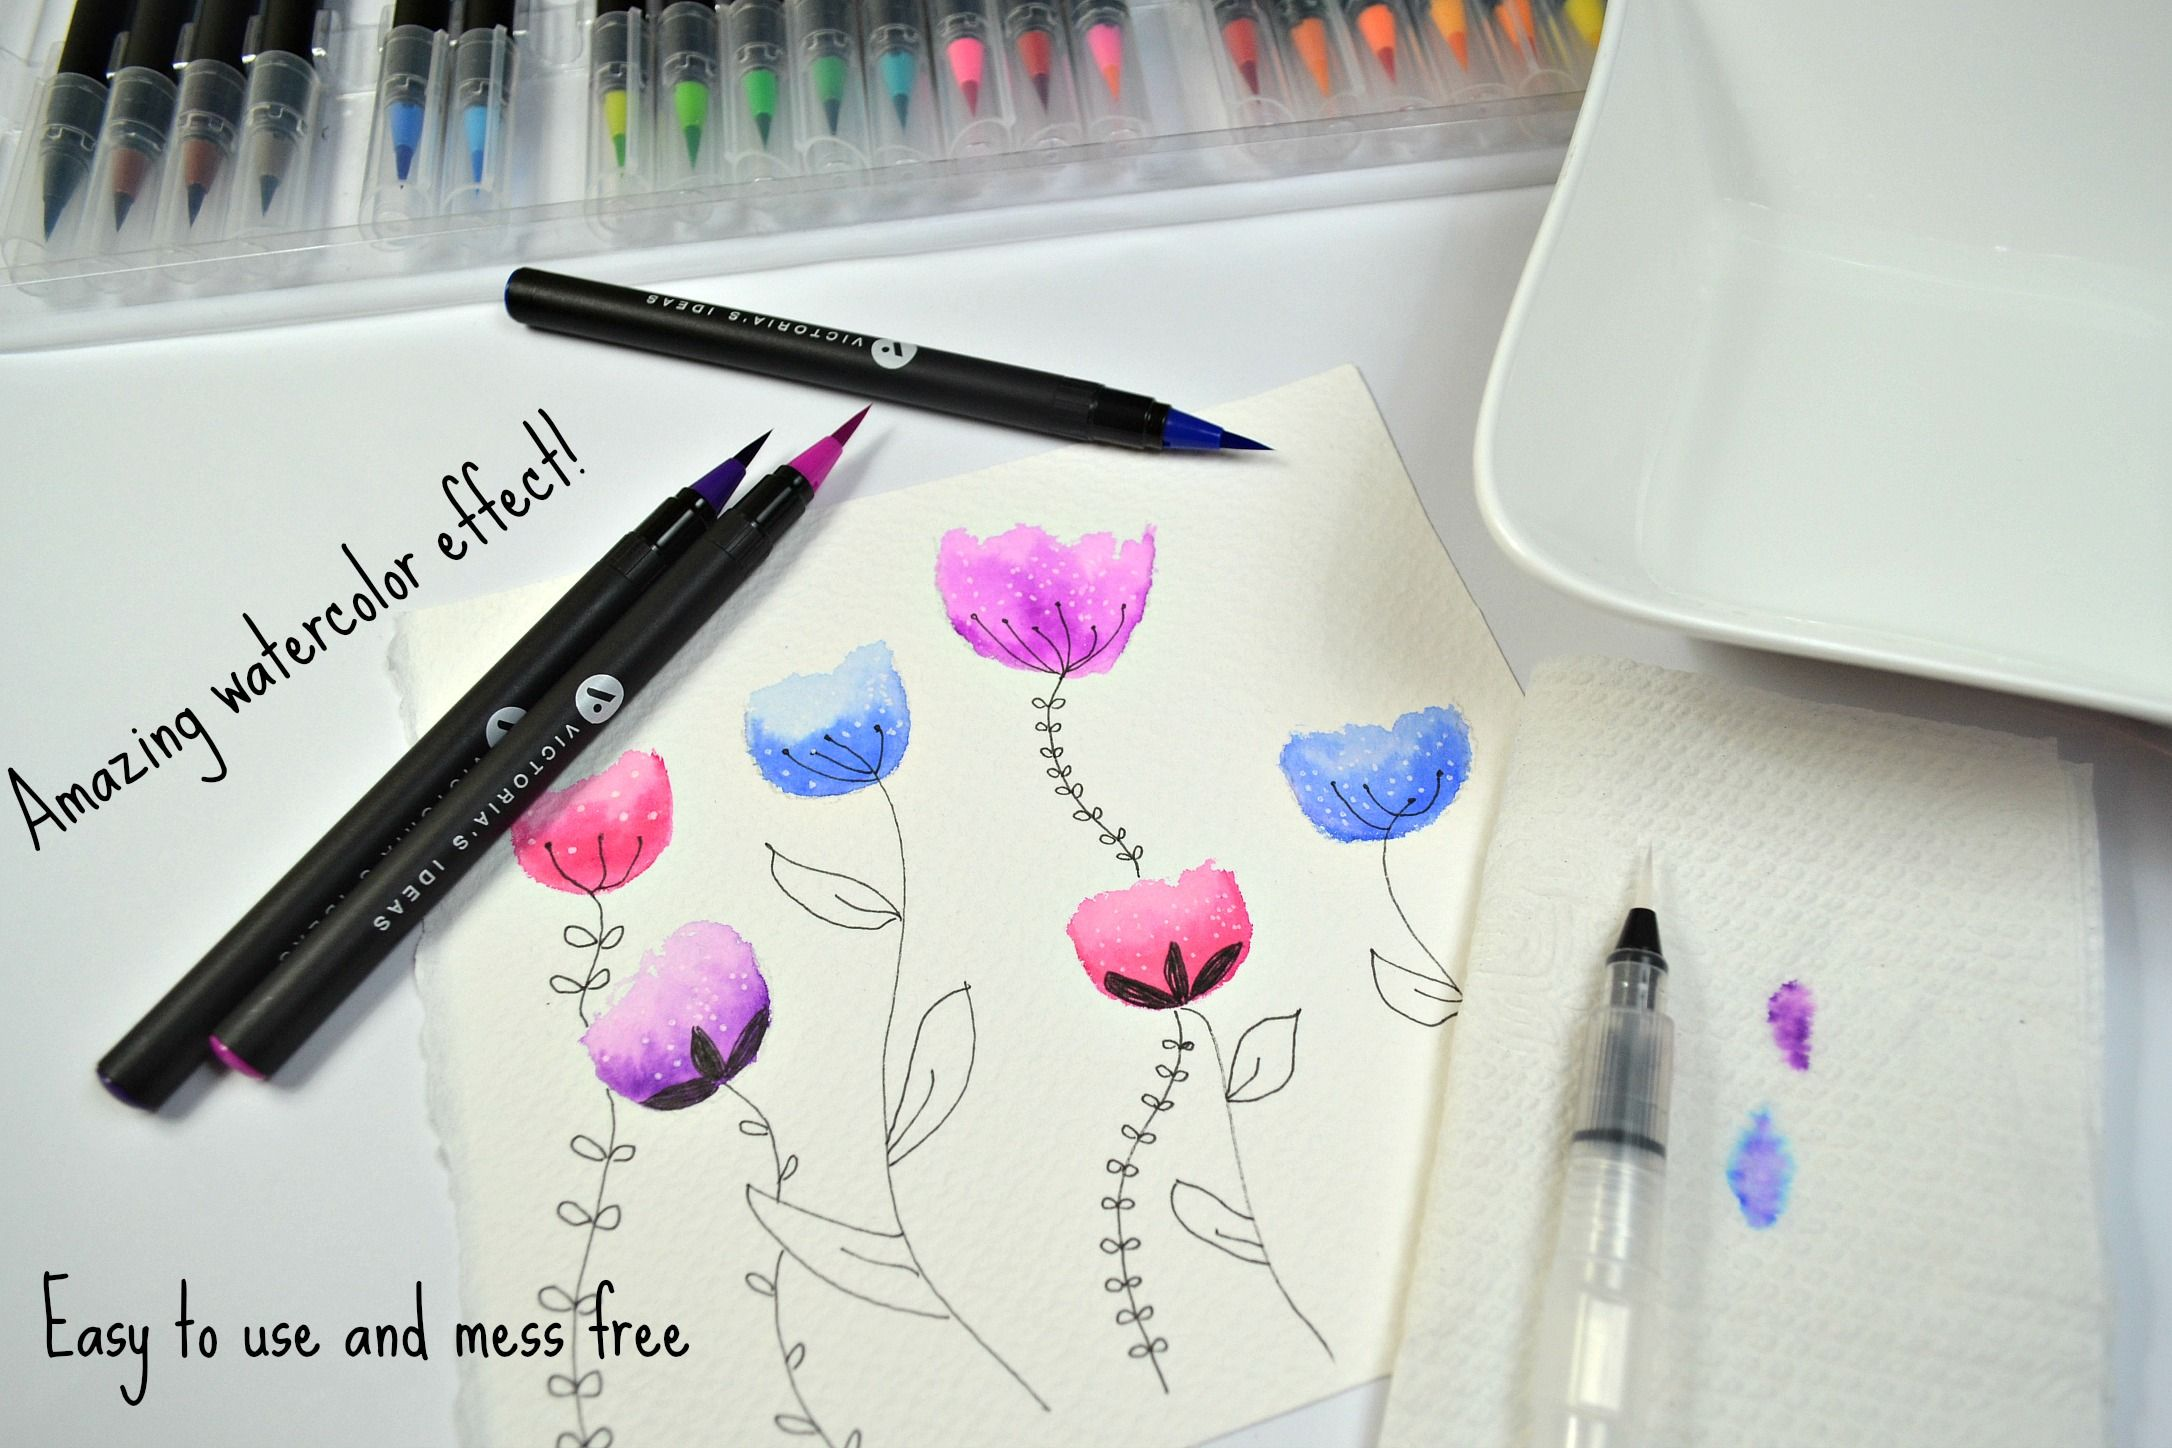 Illustrations And Watercolor Effect With Watercolor Brush Pens By